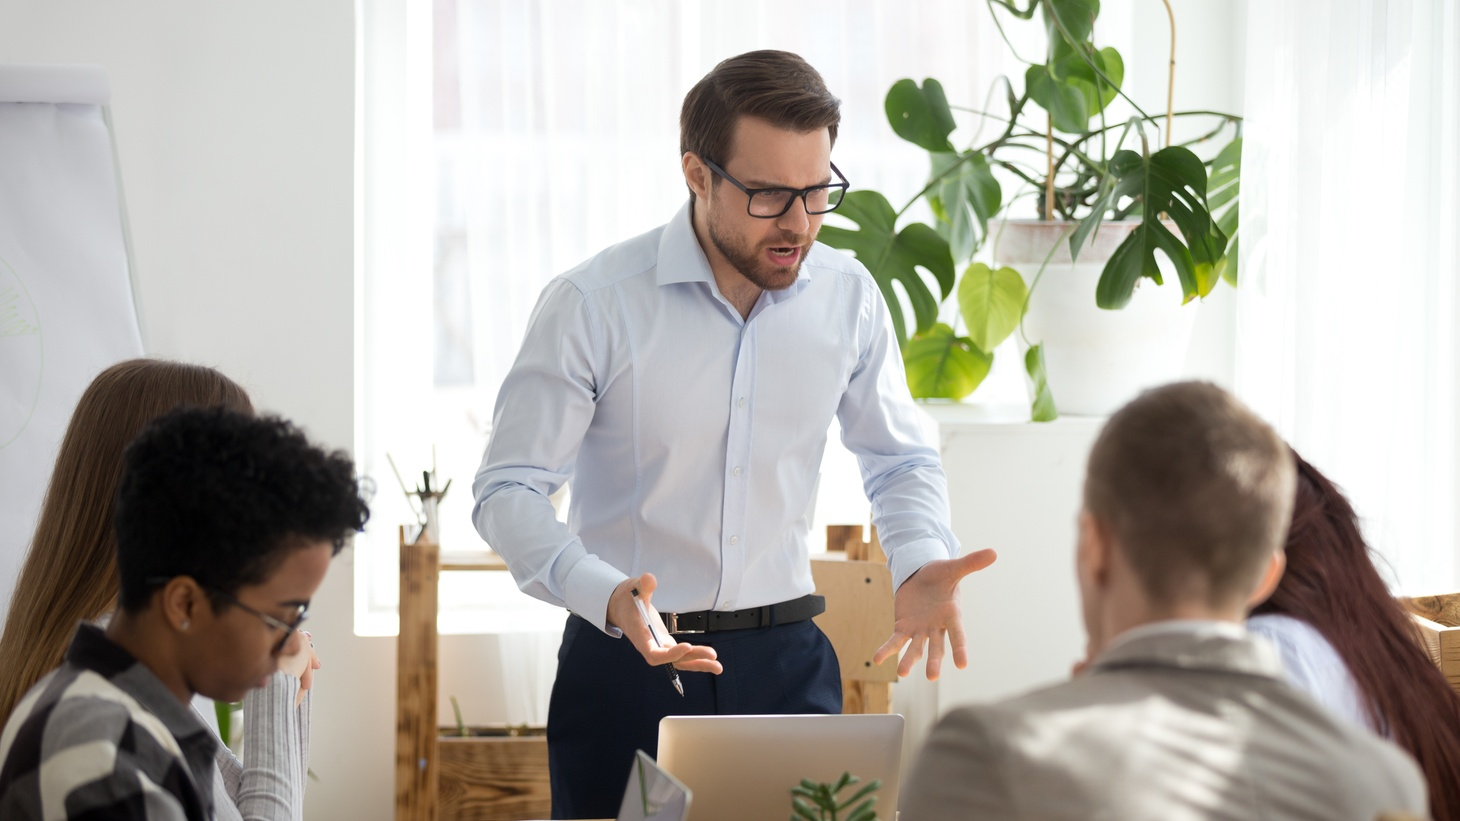 In hopes of breaking the cycle of abuse in Hollywood workplaces, several companies have employed rage coaches to help bosses better interact with their employees.